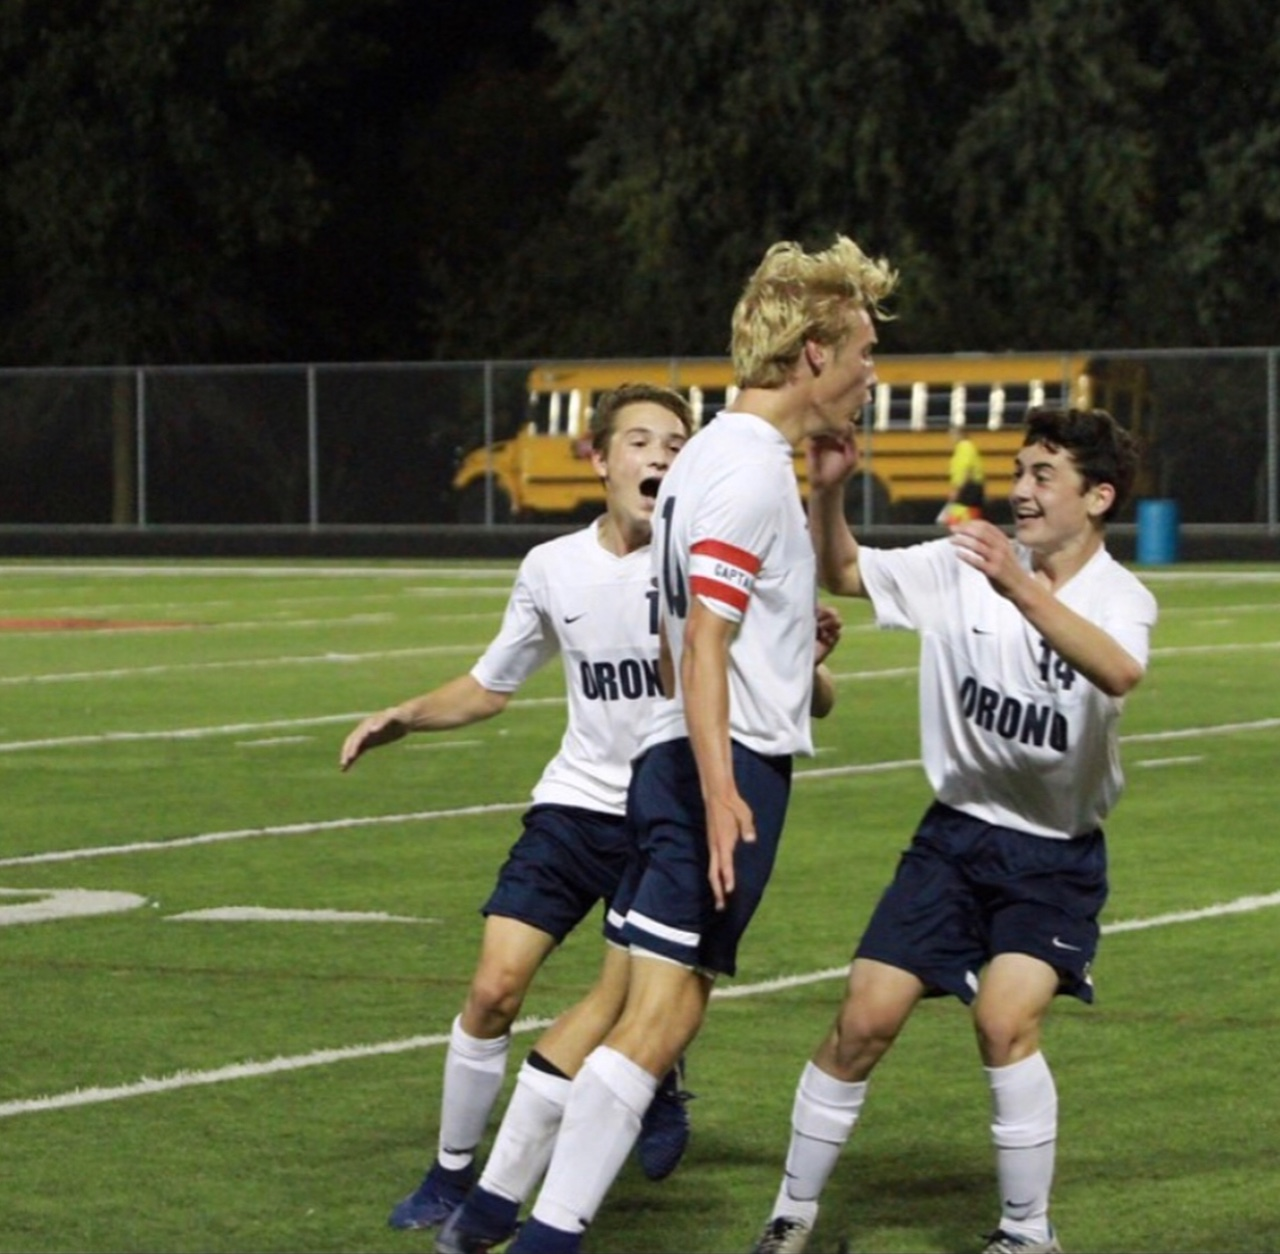 Christian Babo (middle) celebrates goal with teammates Ozzie Ramsey (left) and Jamie Bazil (right).